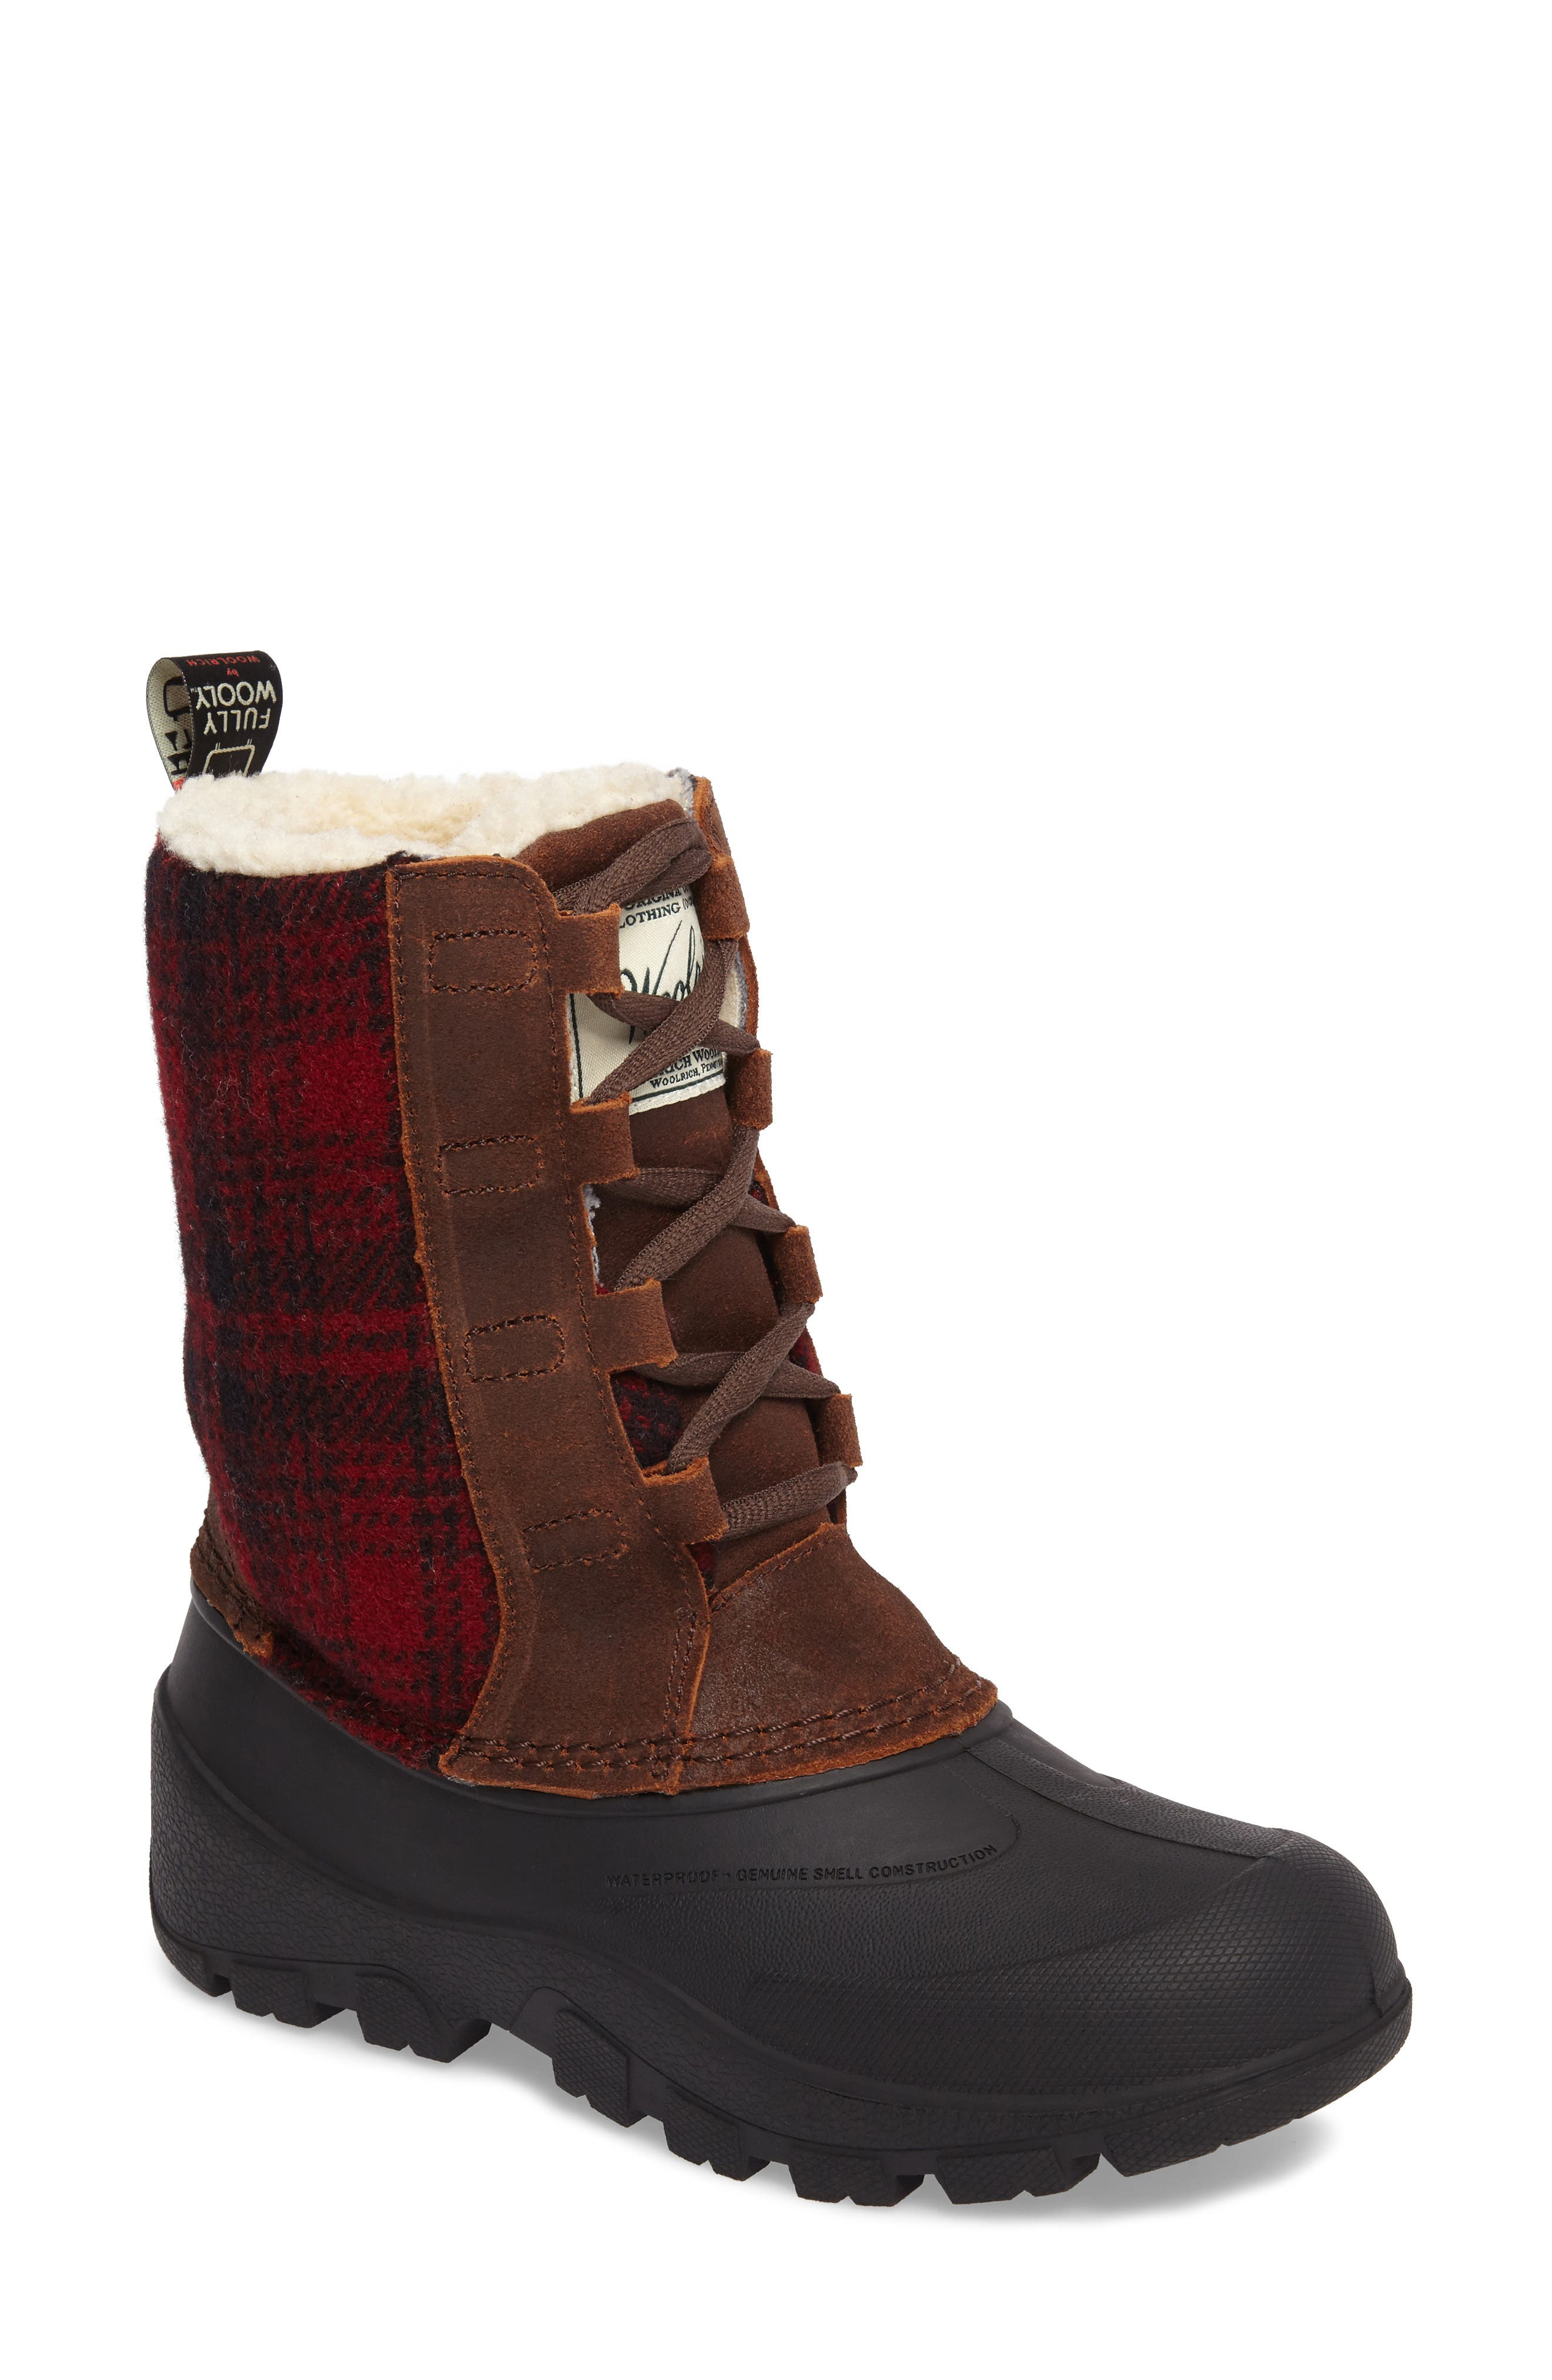 Alternate Image 1 Selected - Woolrich Fully Wooly Tundracat Waterproof Insulated Winter Boot (Women)